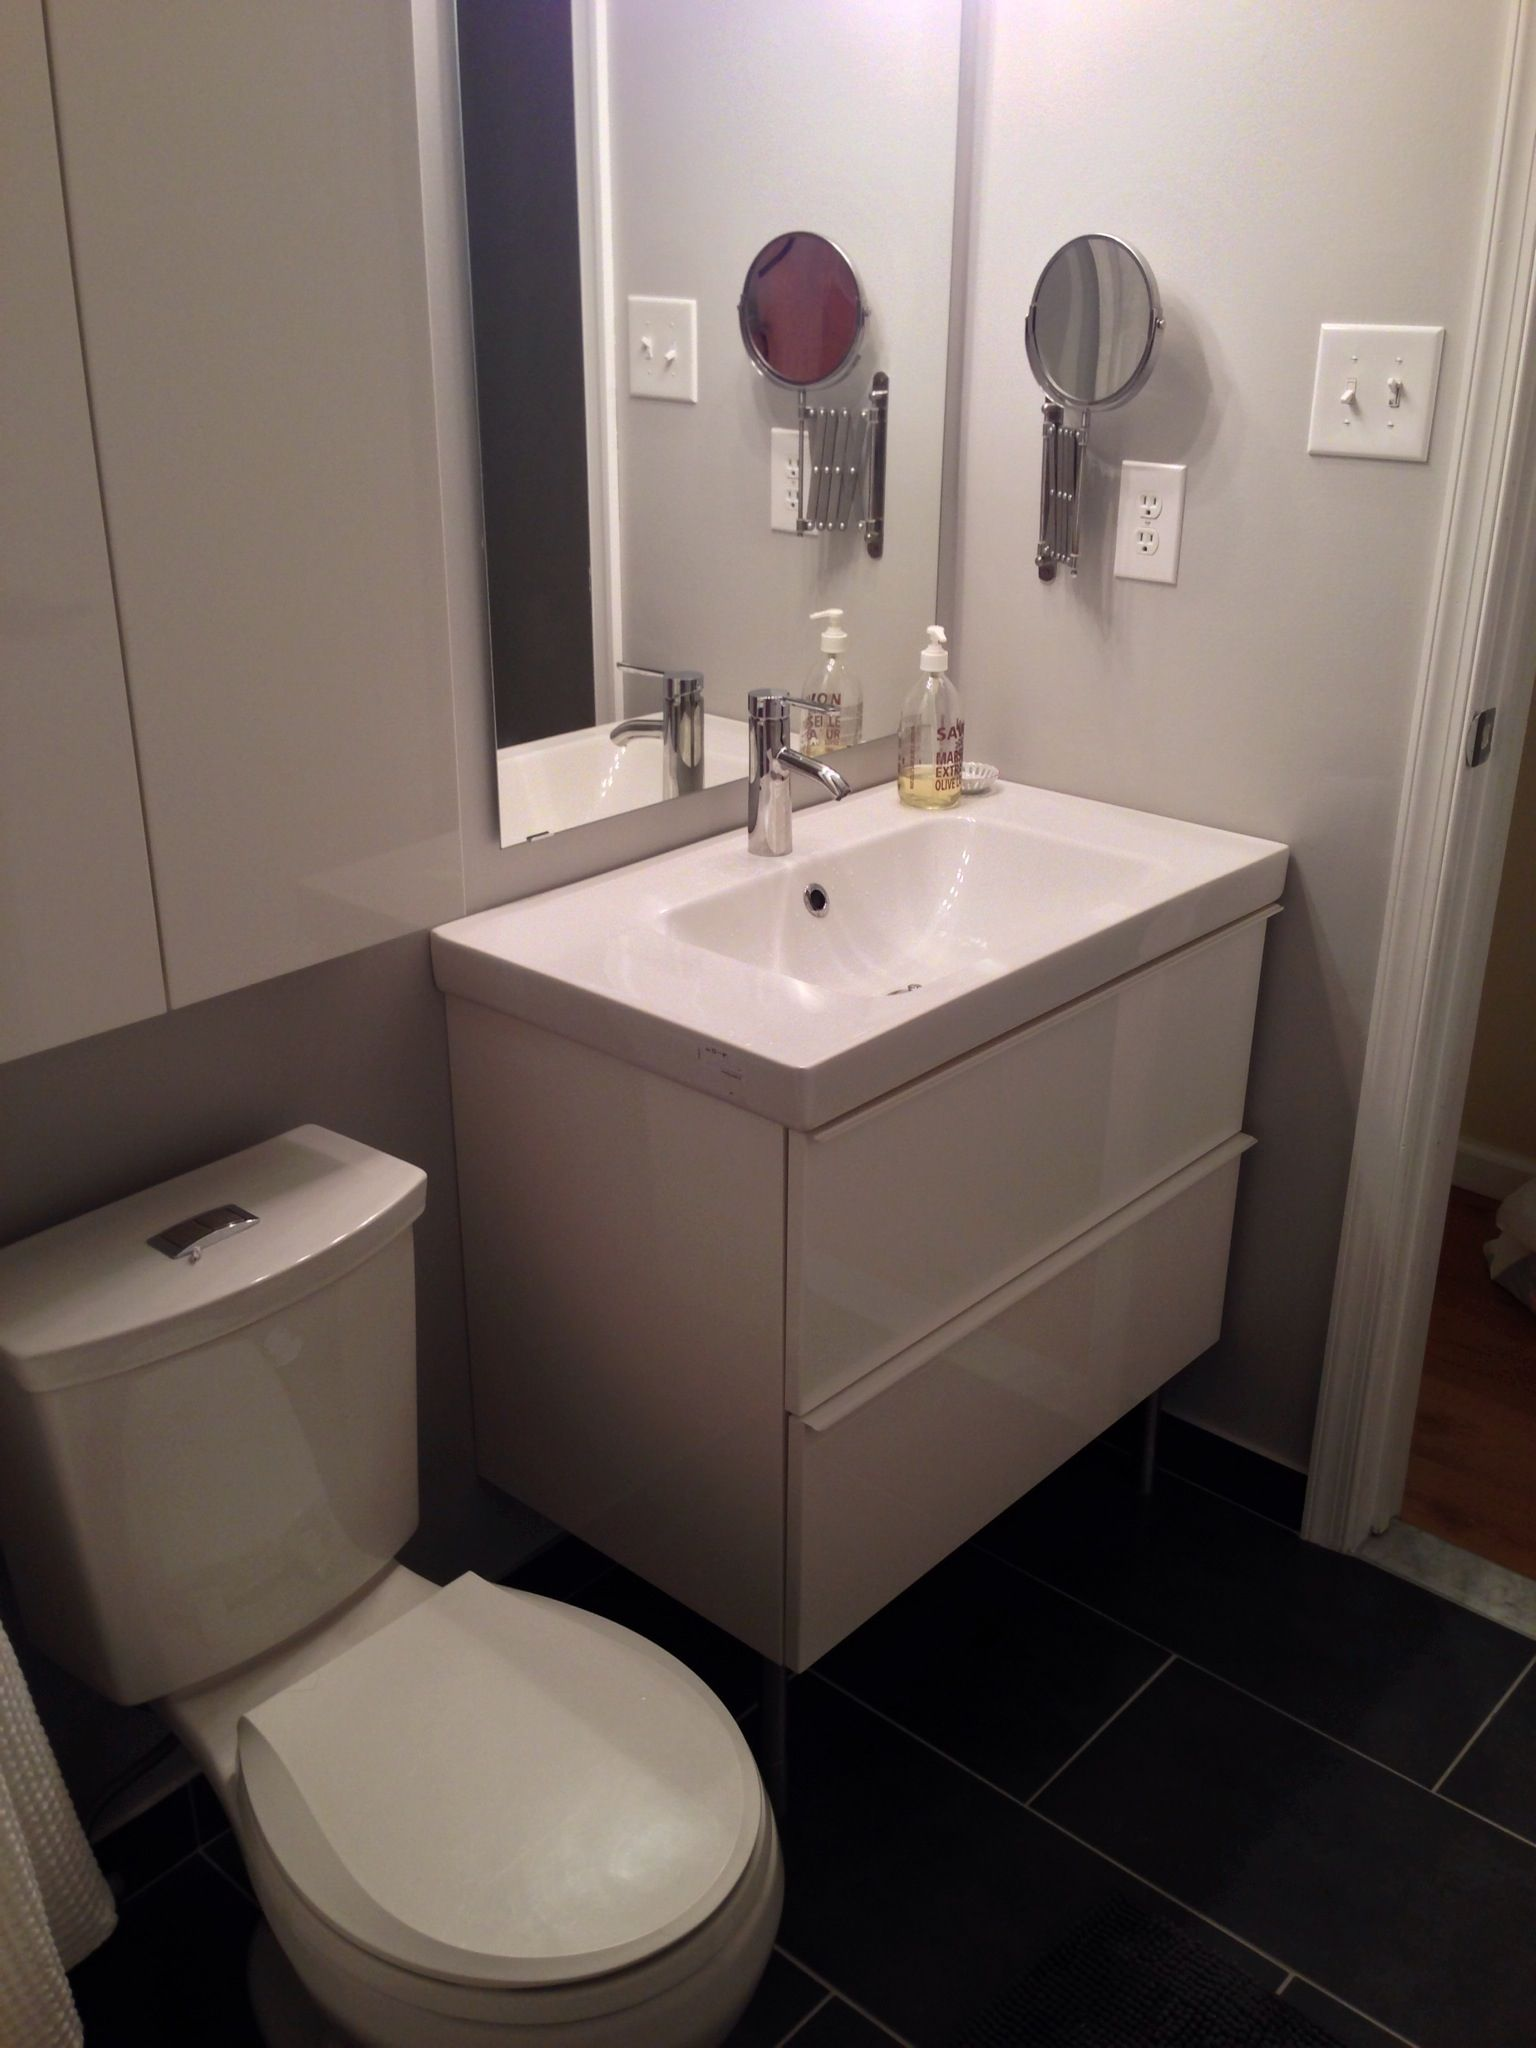 Bathroom cabinets over sink - Terrific Ikea Bathroom Vanity Sink Under Wall Mounted Swing Arm Mirror Alongside Kohler Floor Mounted Water Closet Above Black Ceramic Tile For Bathroom